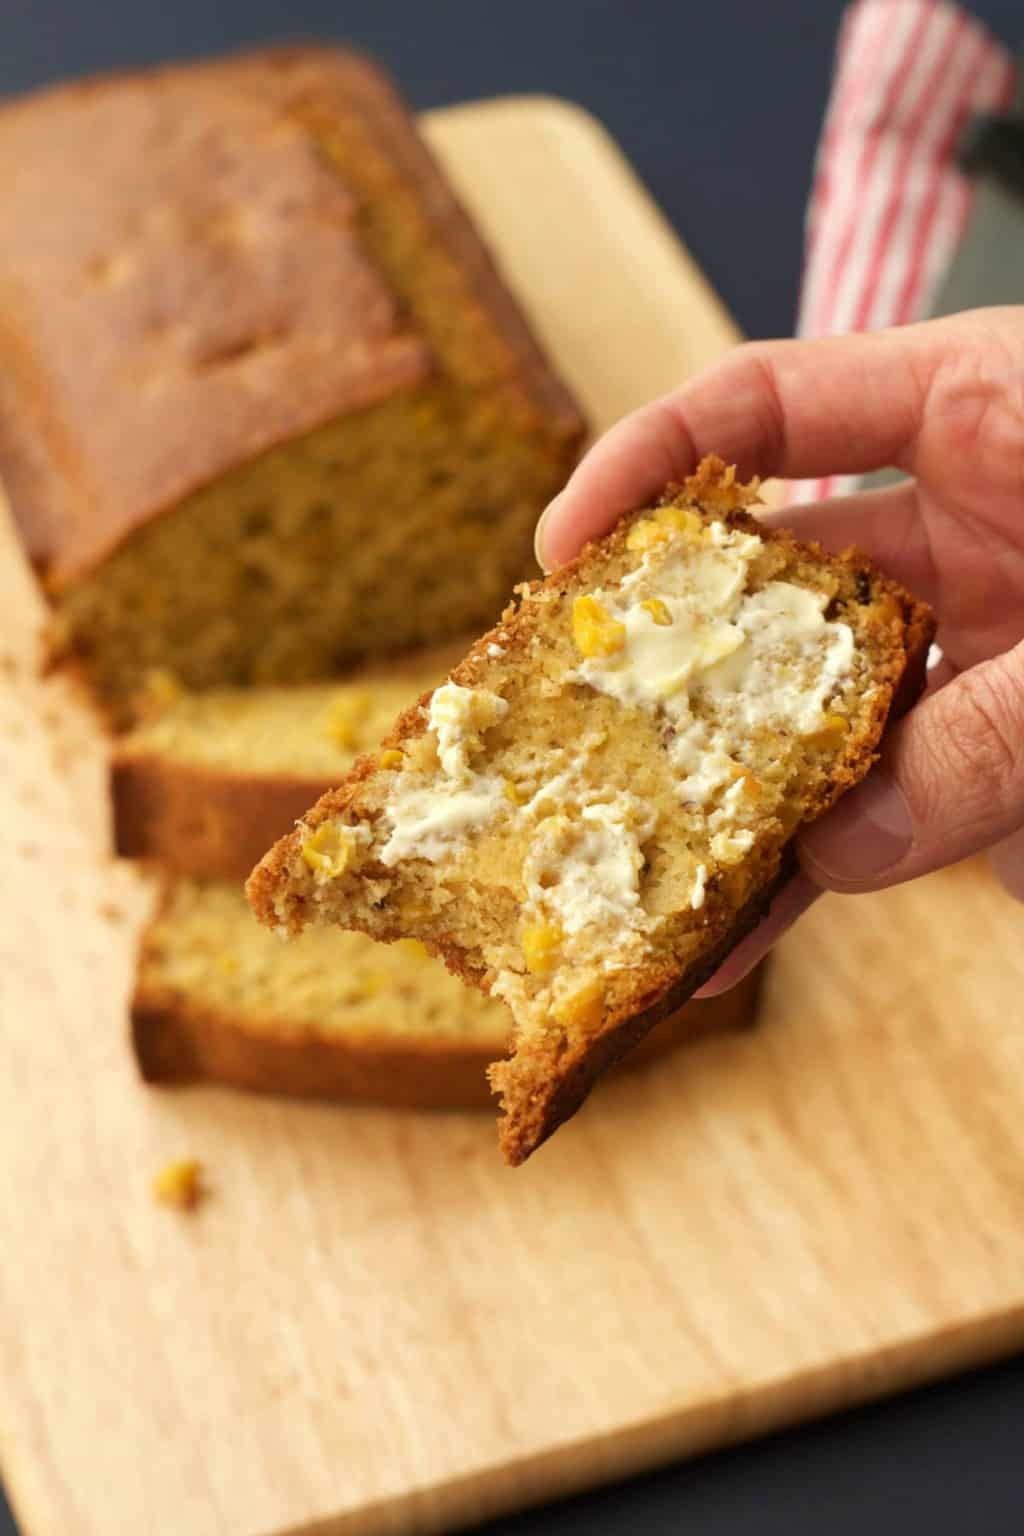 A slice of buttered vegan cornbread with a bite taken out of it.